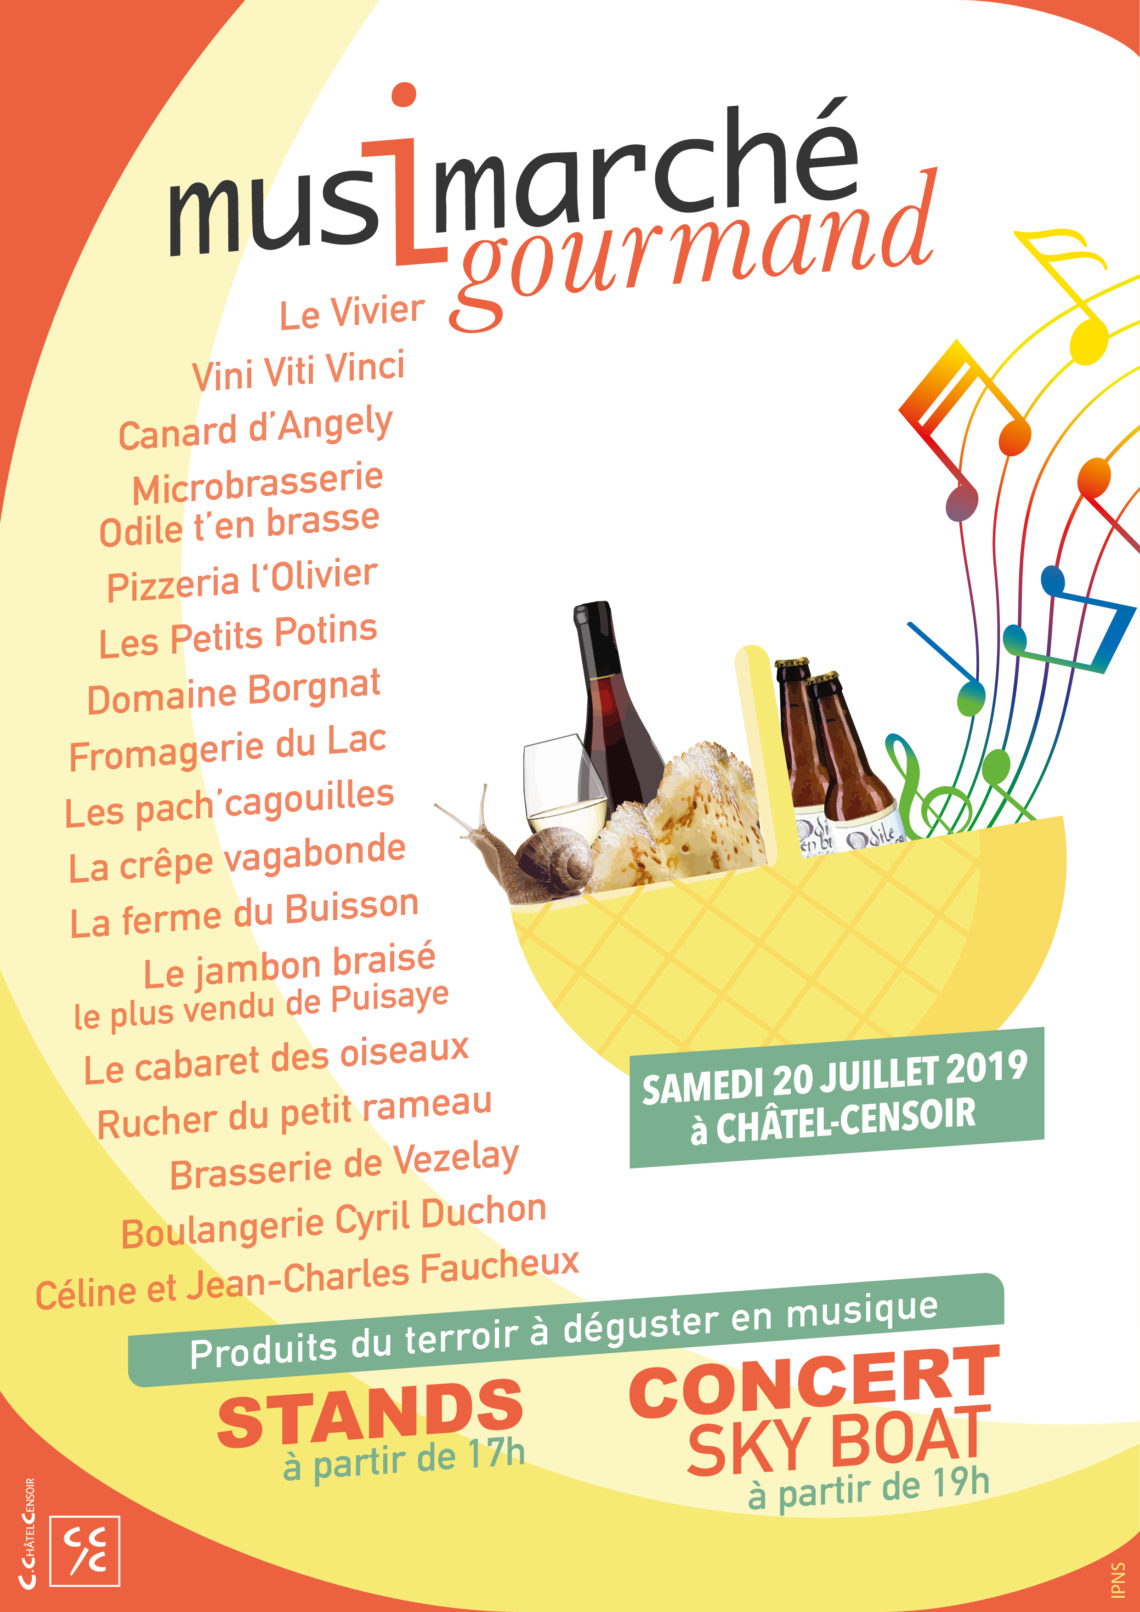 Musimarché gourmand